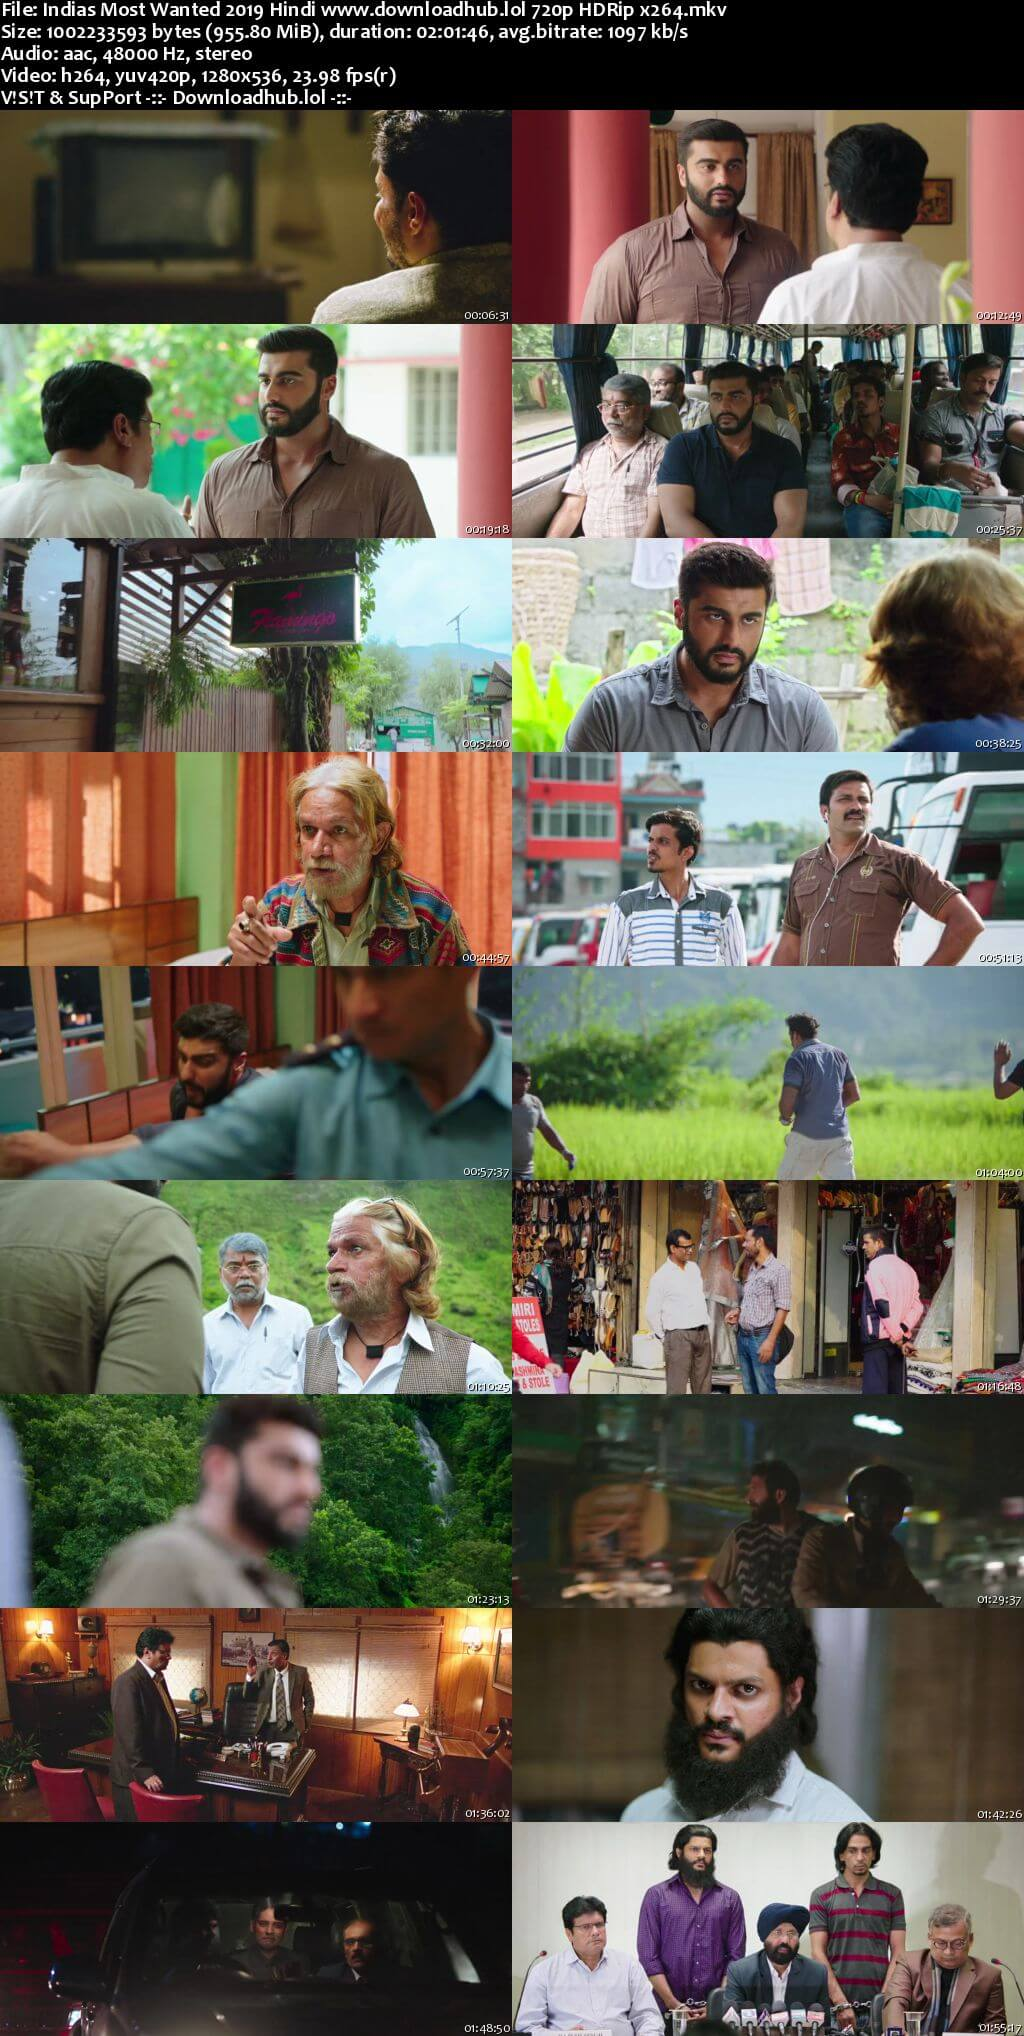 Indias Most Wanted 2019 Hindi 720p HDRip x264